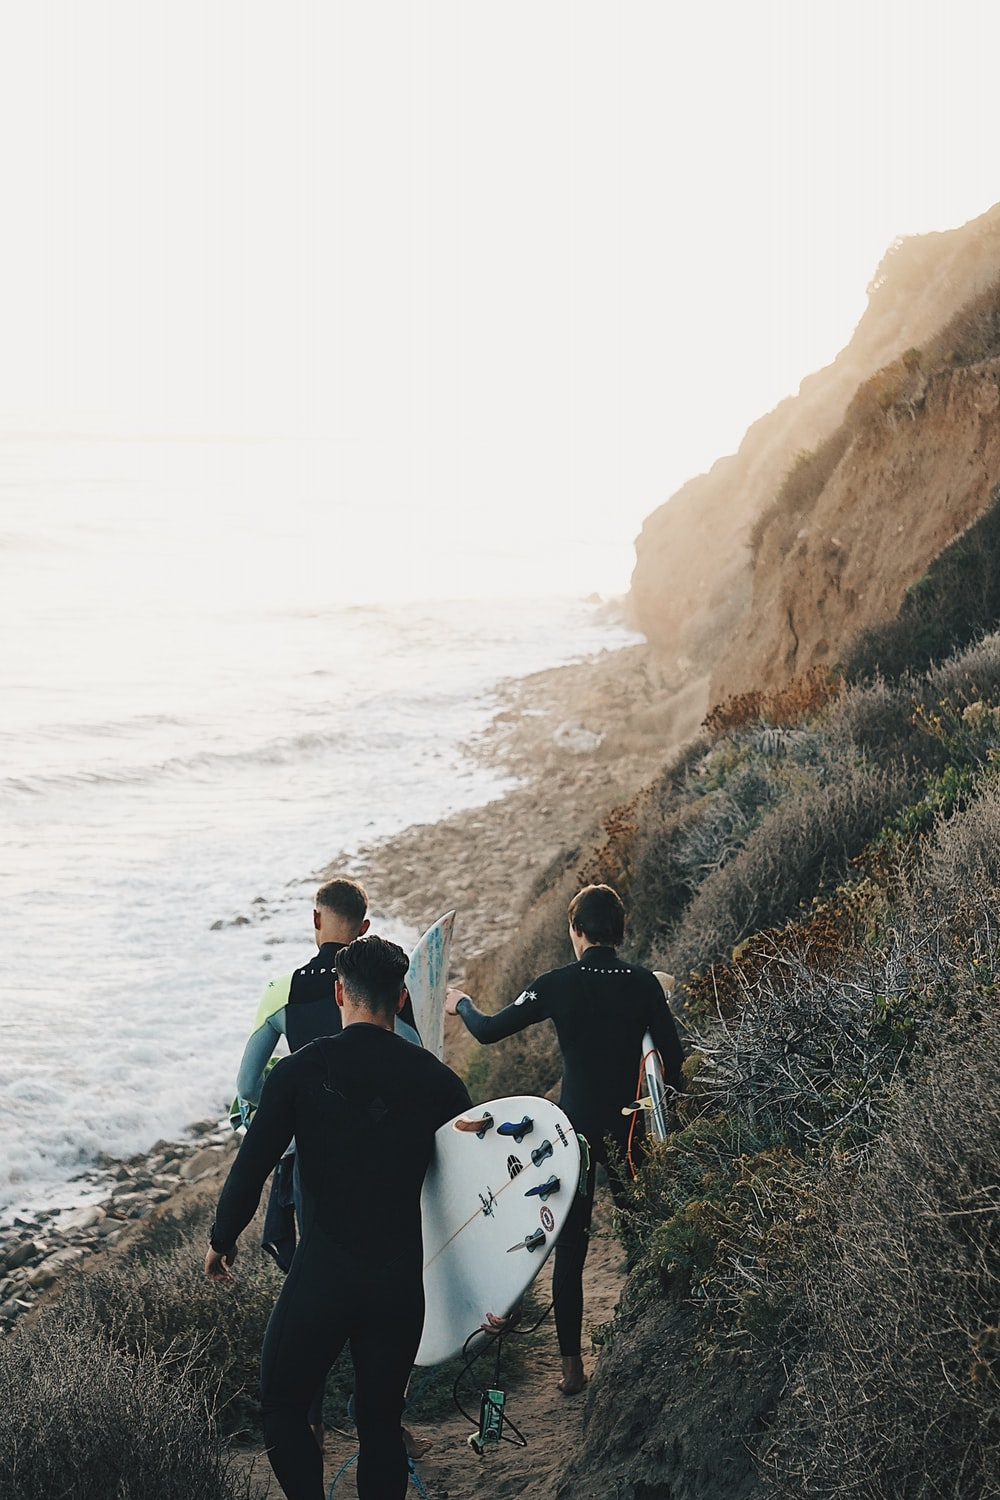 three men holding surfboards